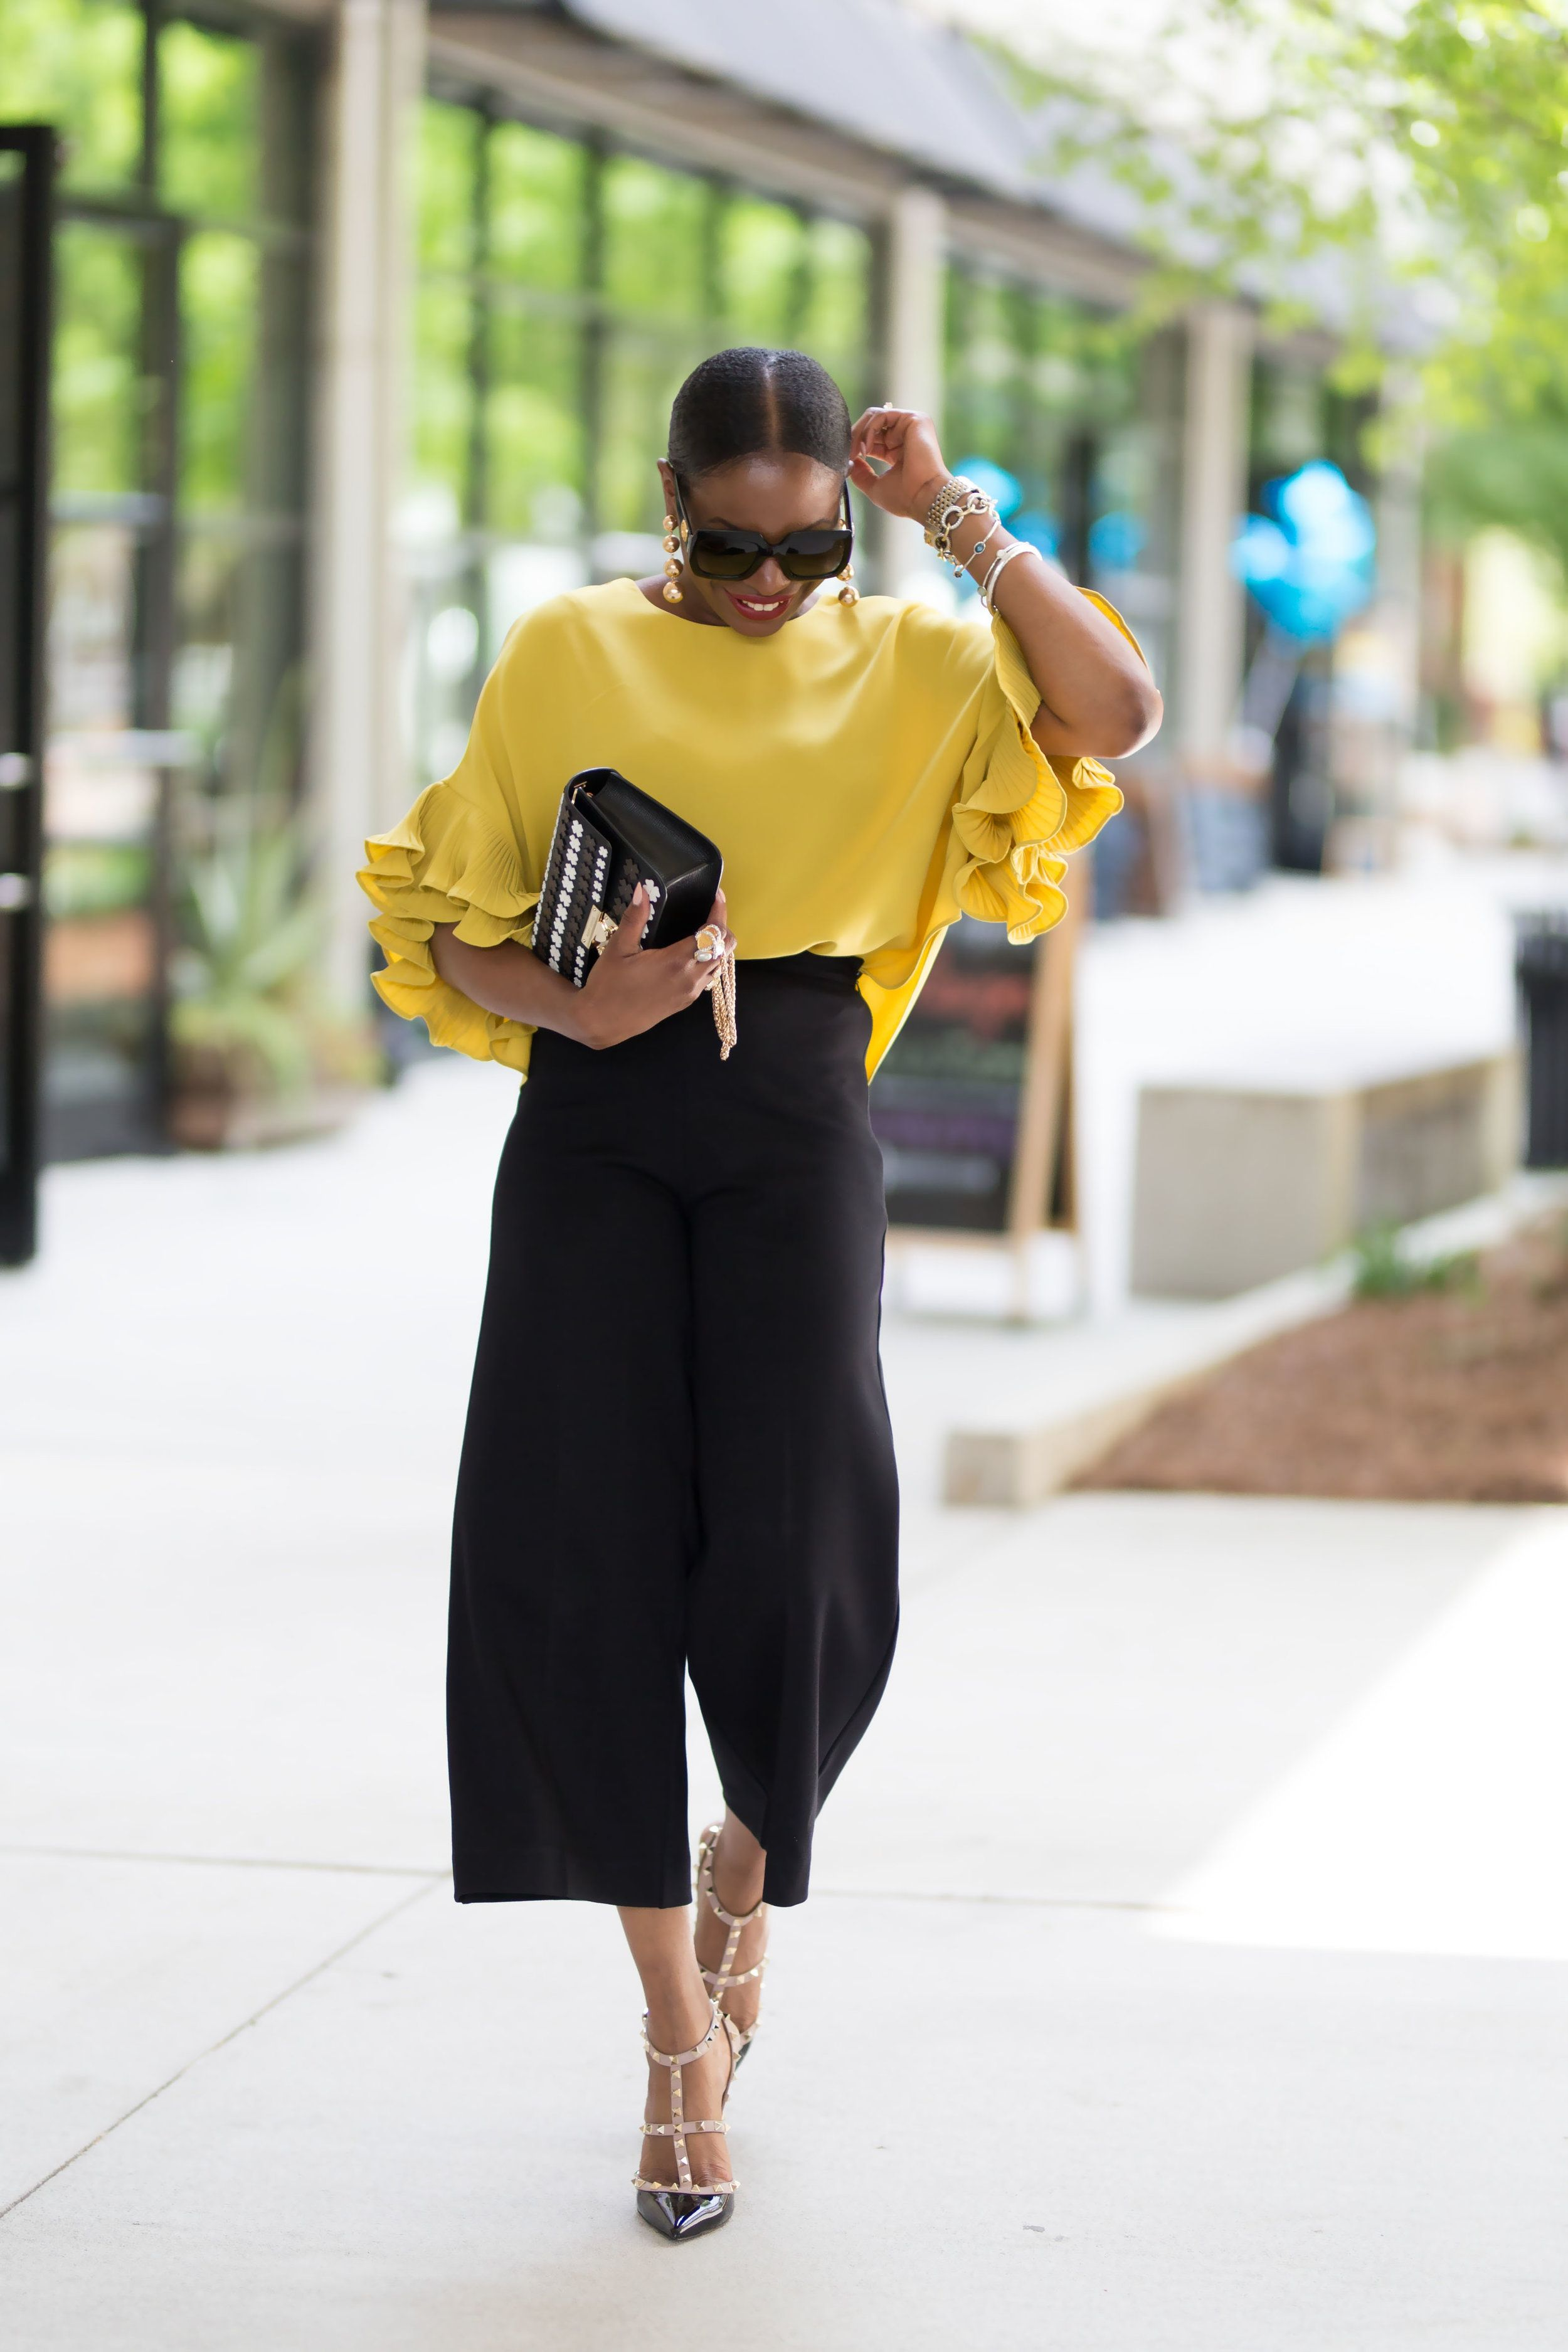 How to style a yellow top for summer